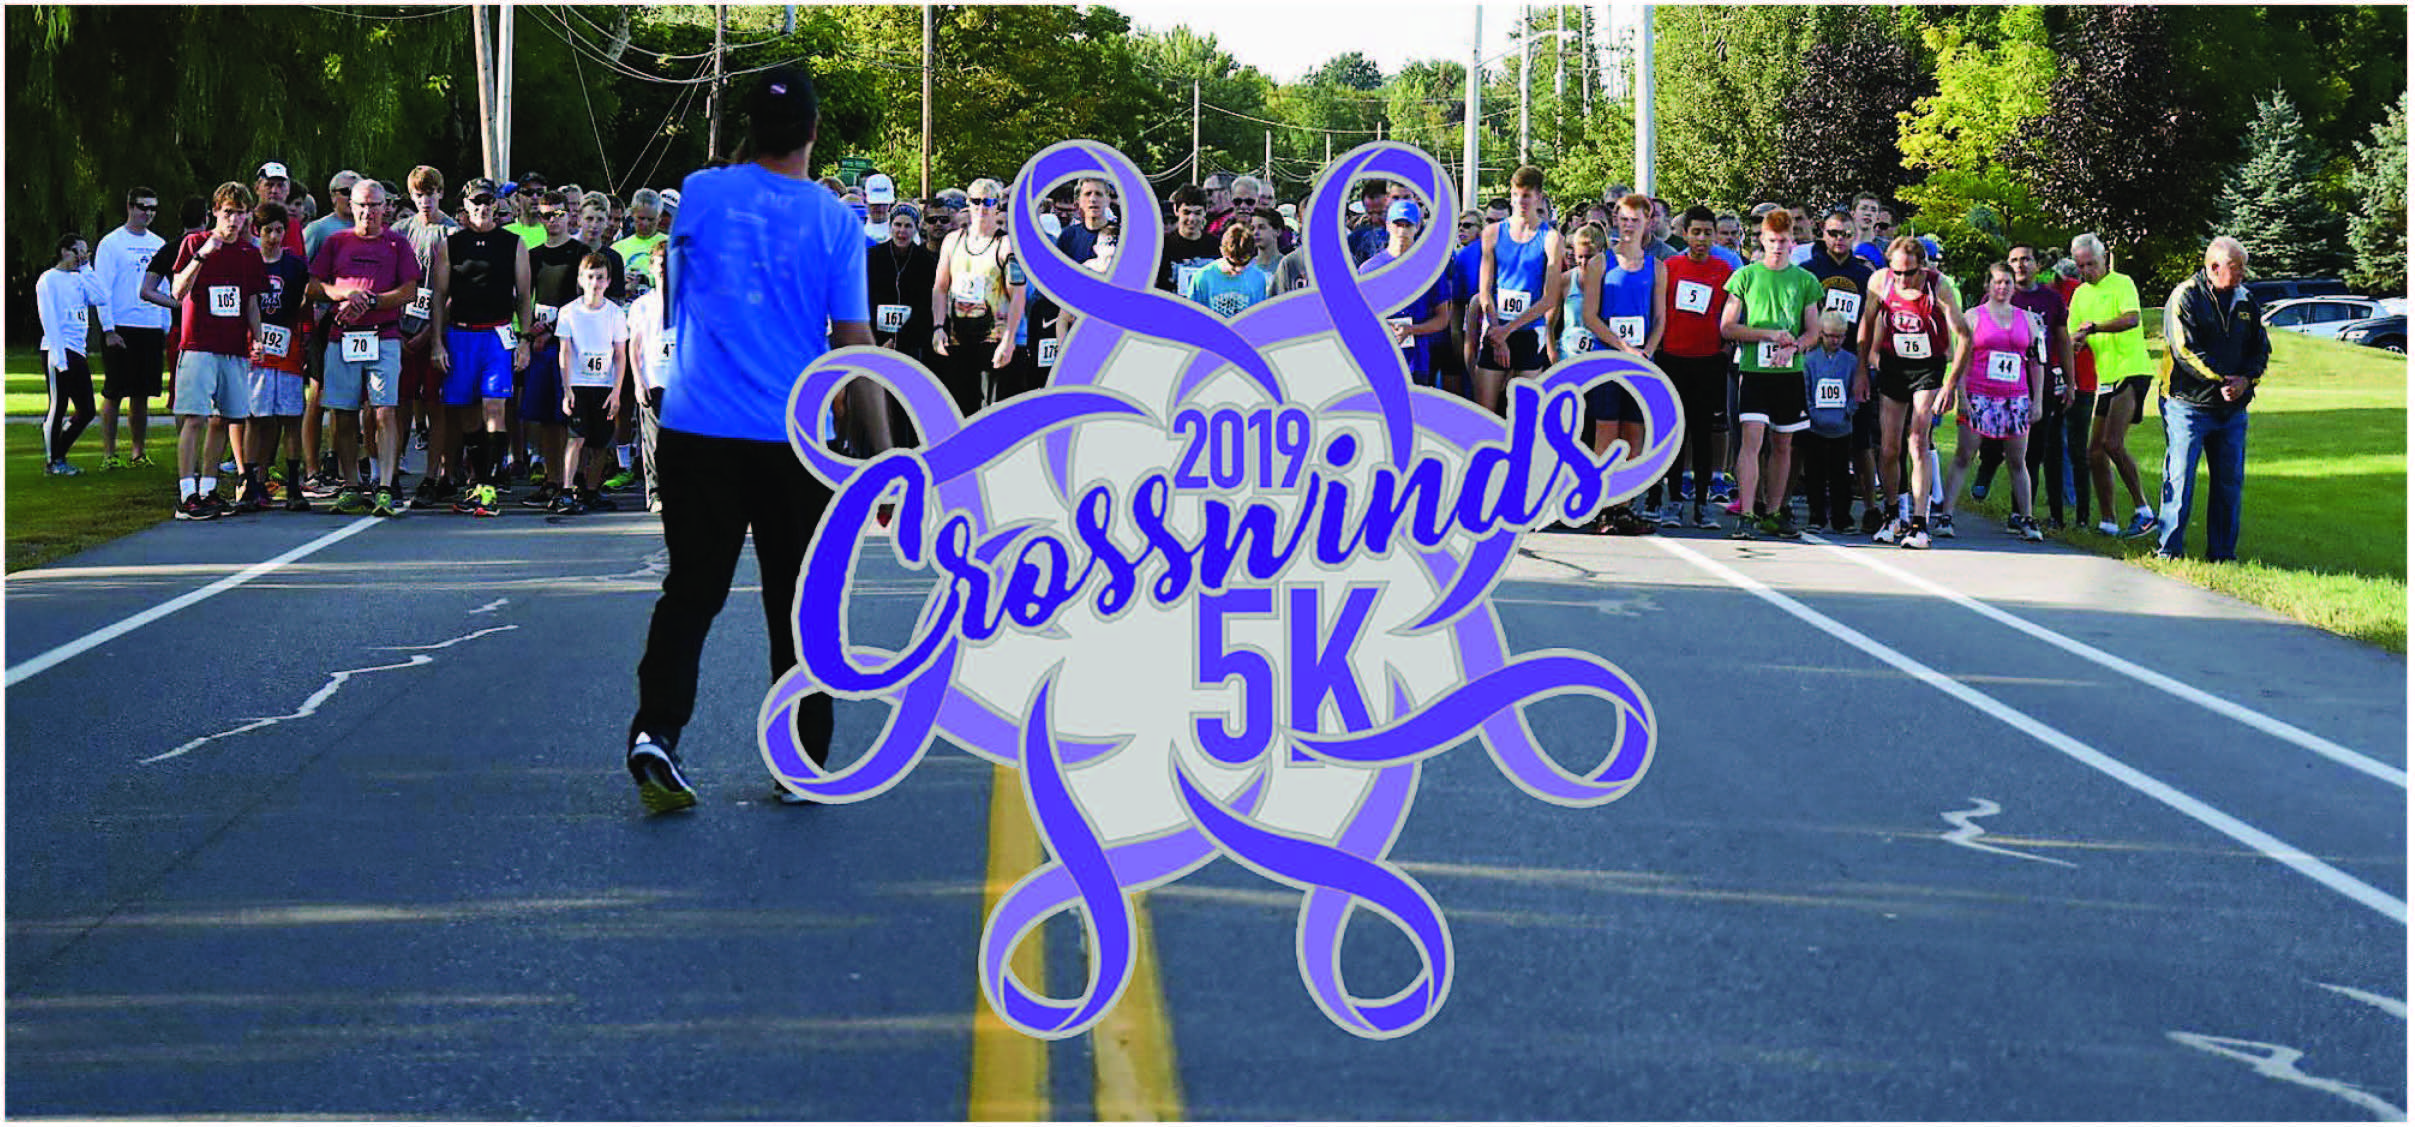 2019 Crosswinds 5K to benefit the Patients Needs Fund at Wilmont Cancer Institute's Sand's Cancer Center in Canandaigua